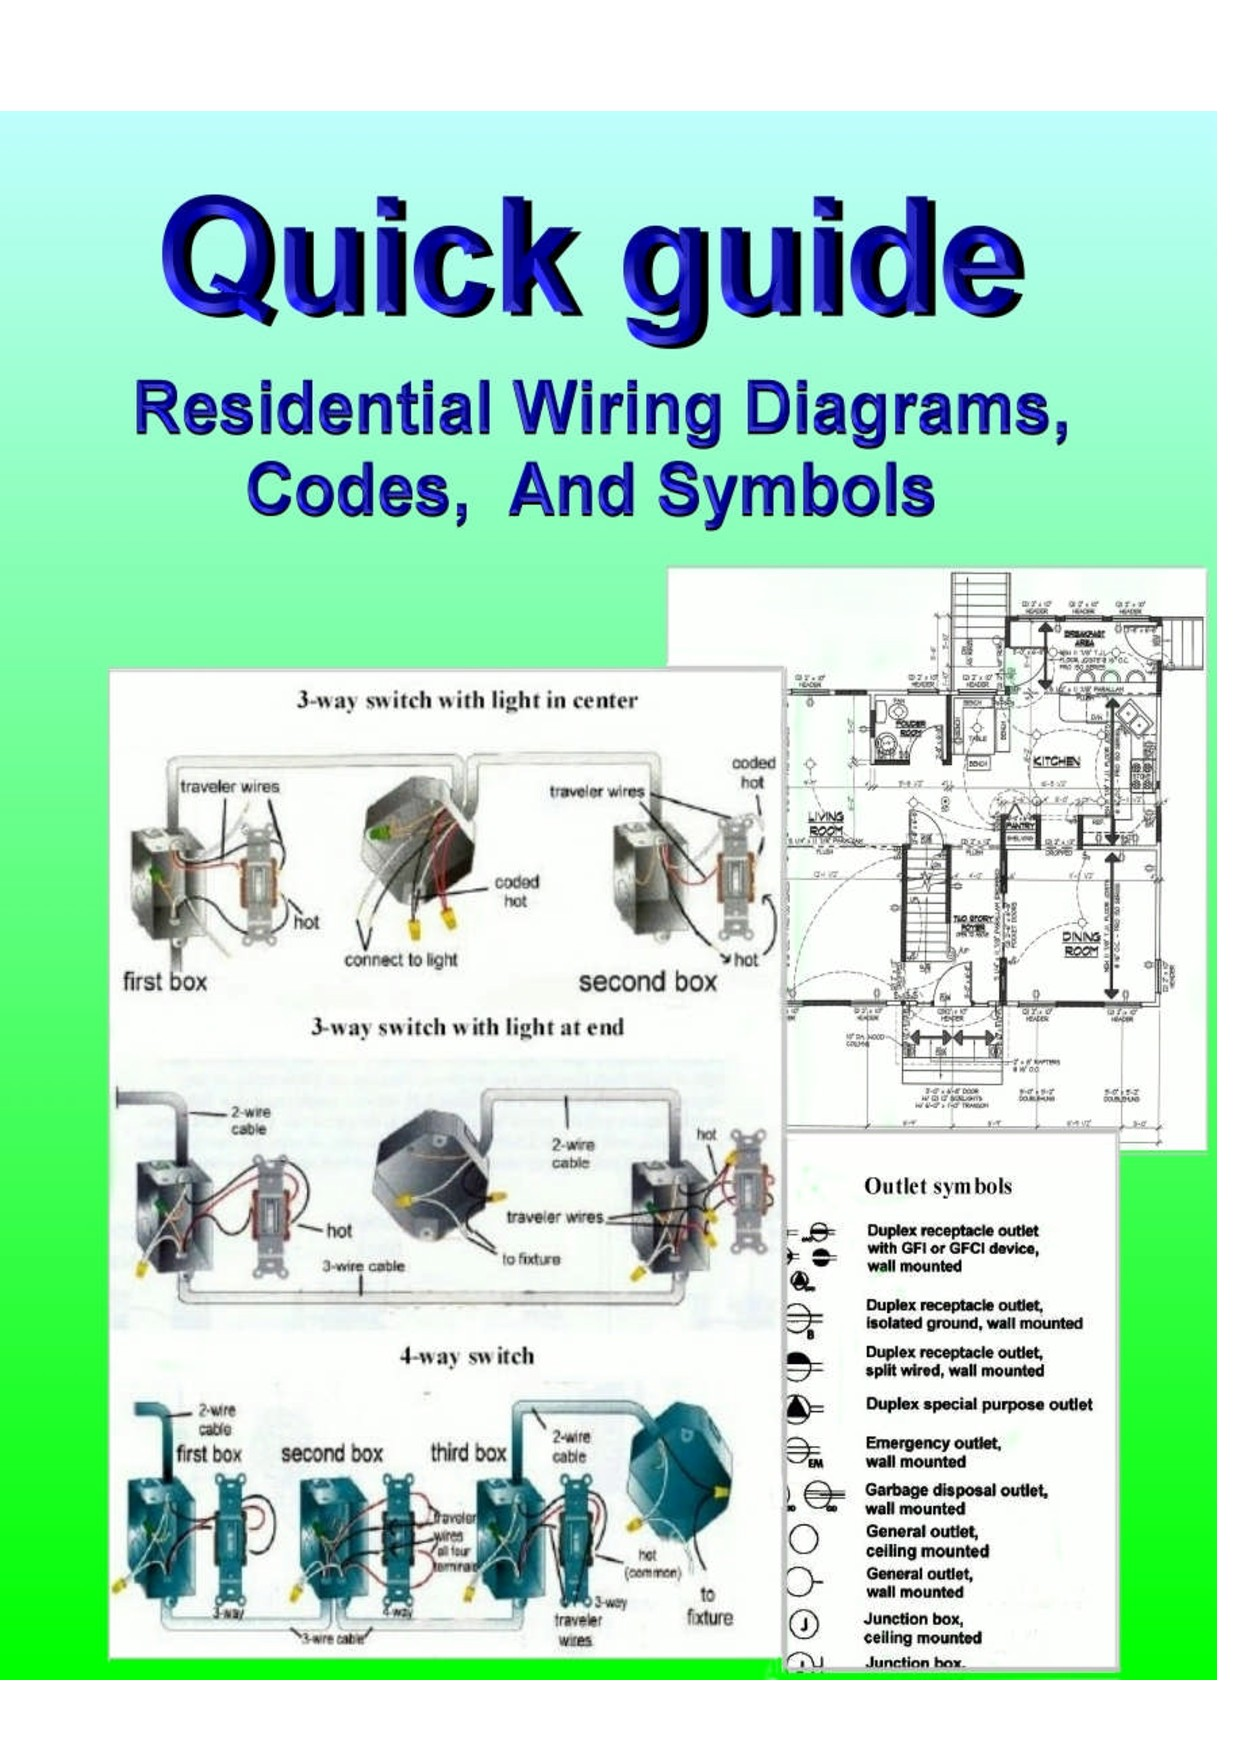 Wiring Photocell to Lighting Contactor Lighting Contactor Wiring Diagram Pdf Of Wiring Photocell to Lighting Contactor Eaton atc 800 Wiring Diagram Contactor Wiring Diagram A1 A2